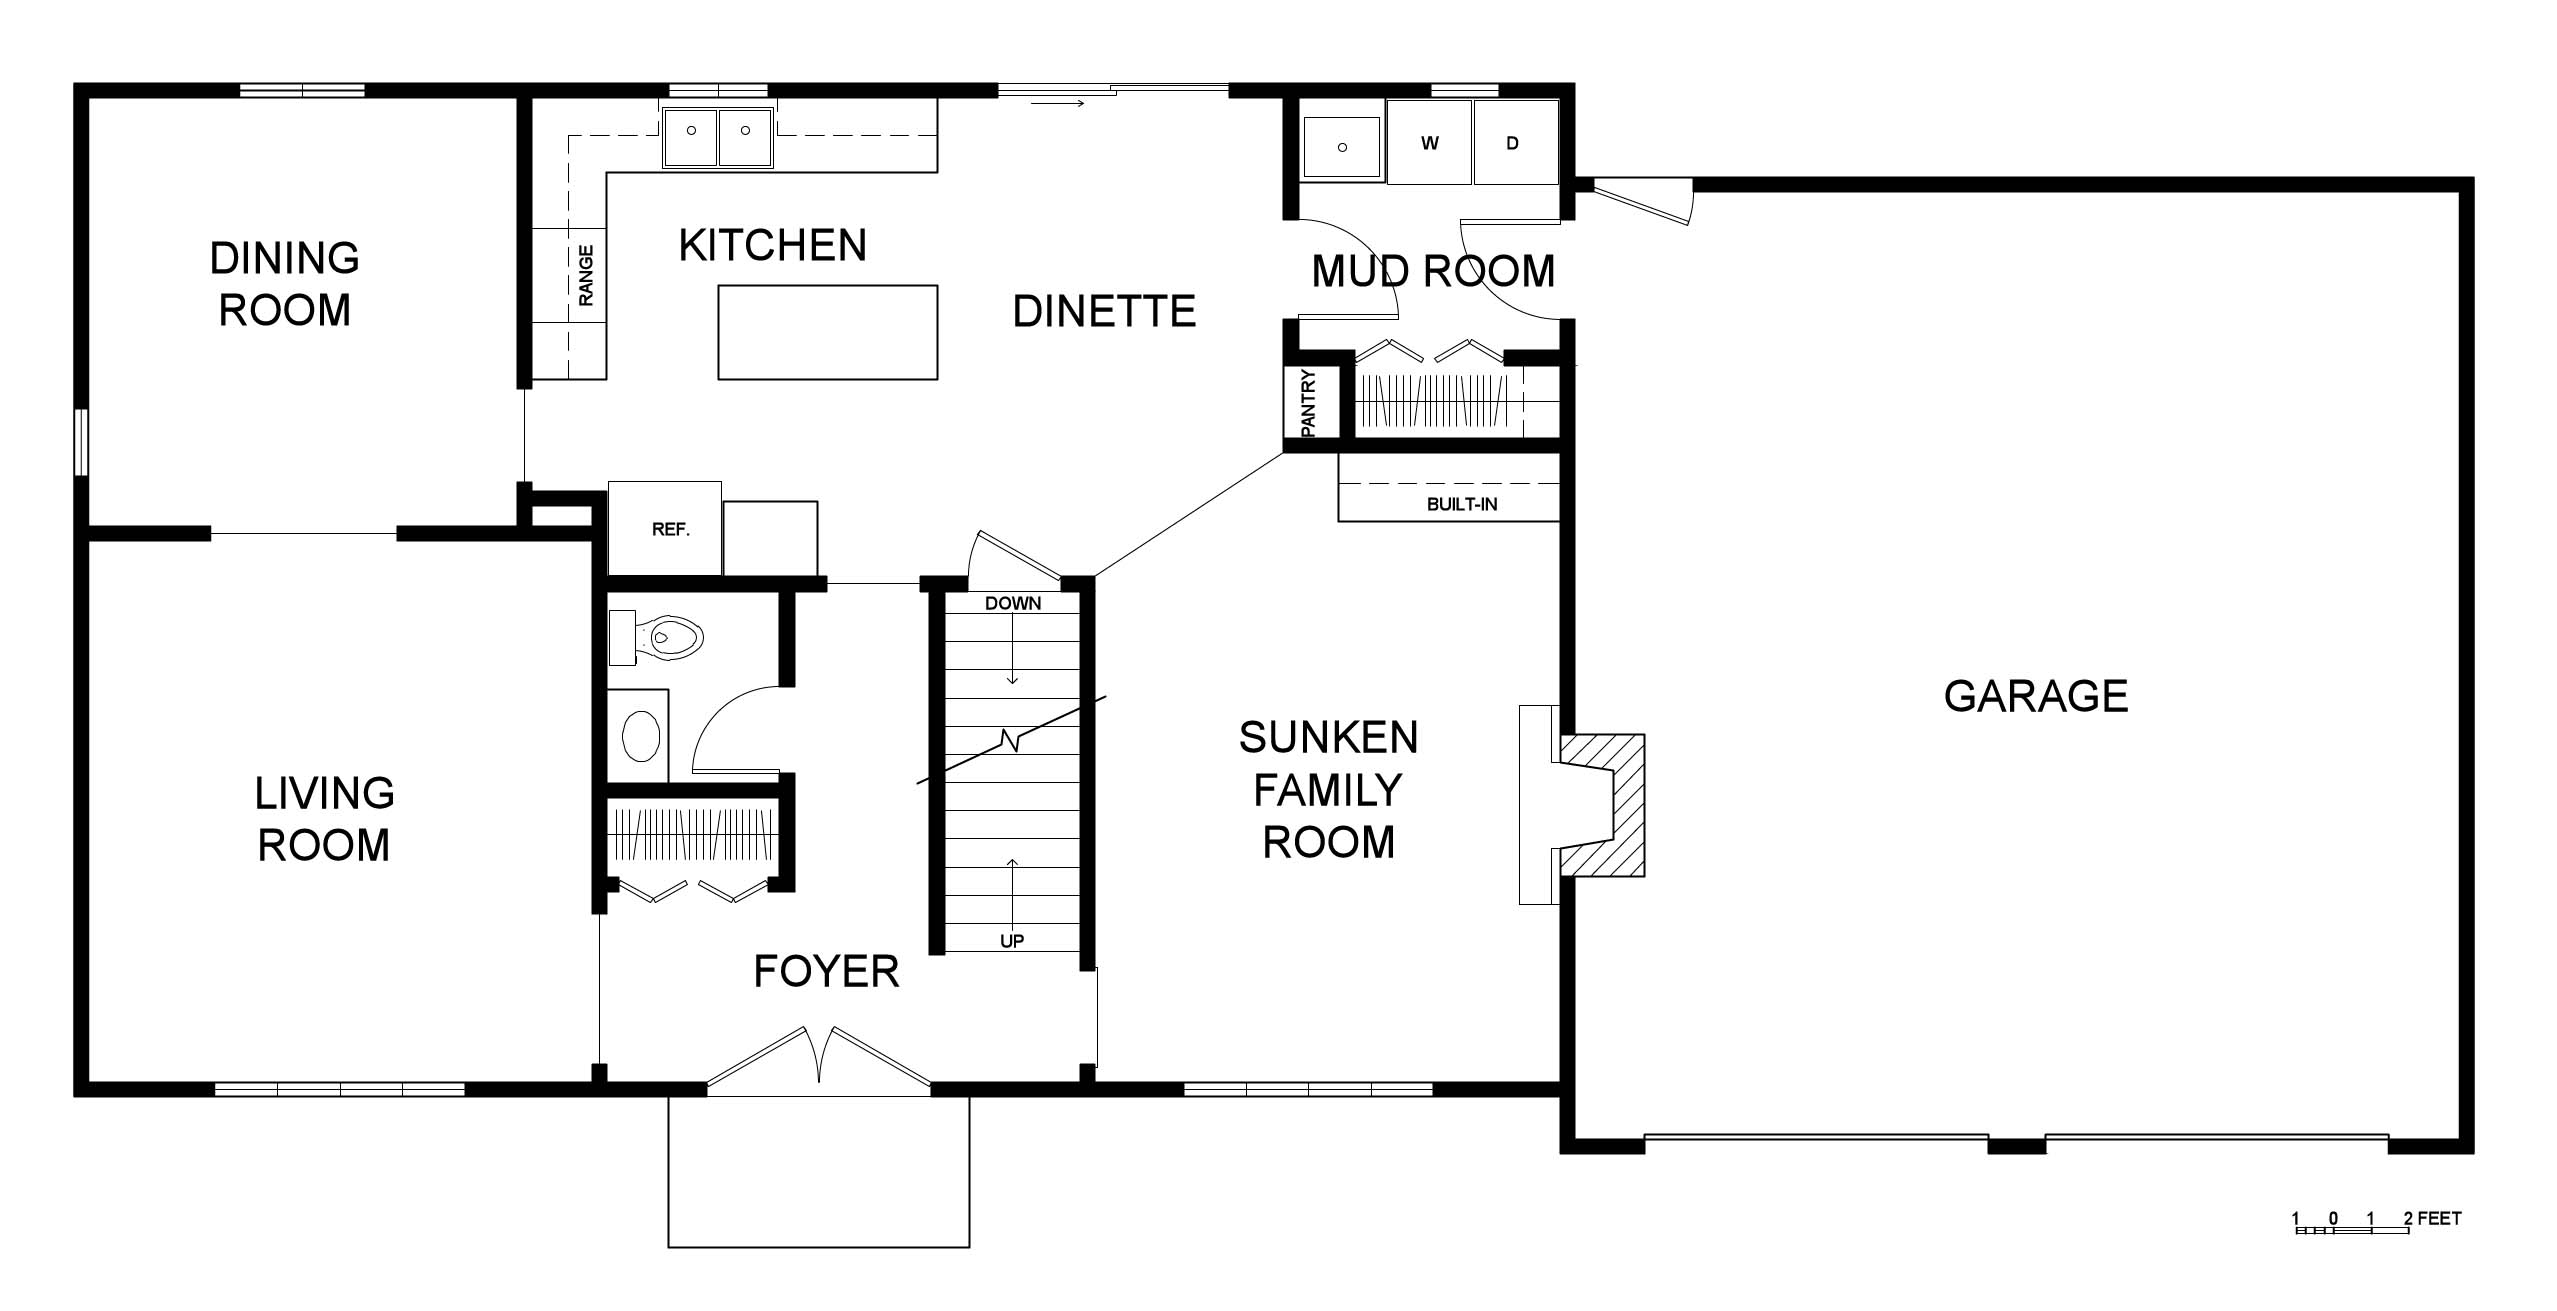 Advice On Floor Plan Design For Cal Bunga Renovation Extension additionally 249 s salisbury st 3 bedroom floor plan moreover Need Interior Design Help For A Large Living Room And Open Floor Plan also Theater as well Gropius House Plan. on family home floor plans